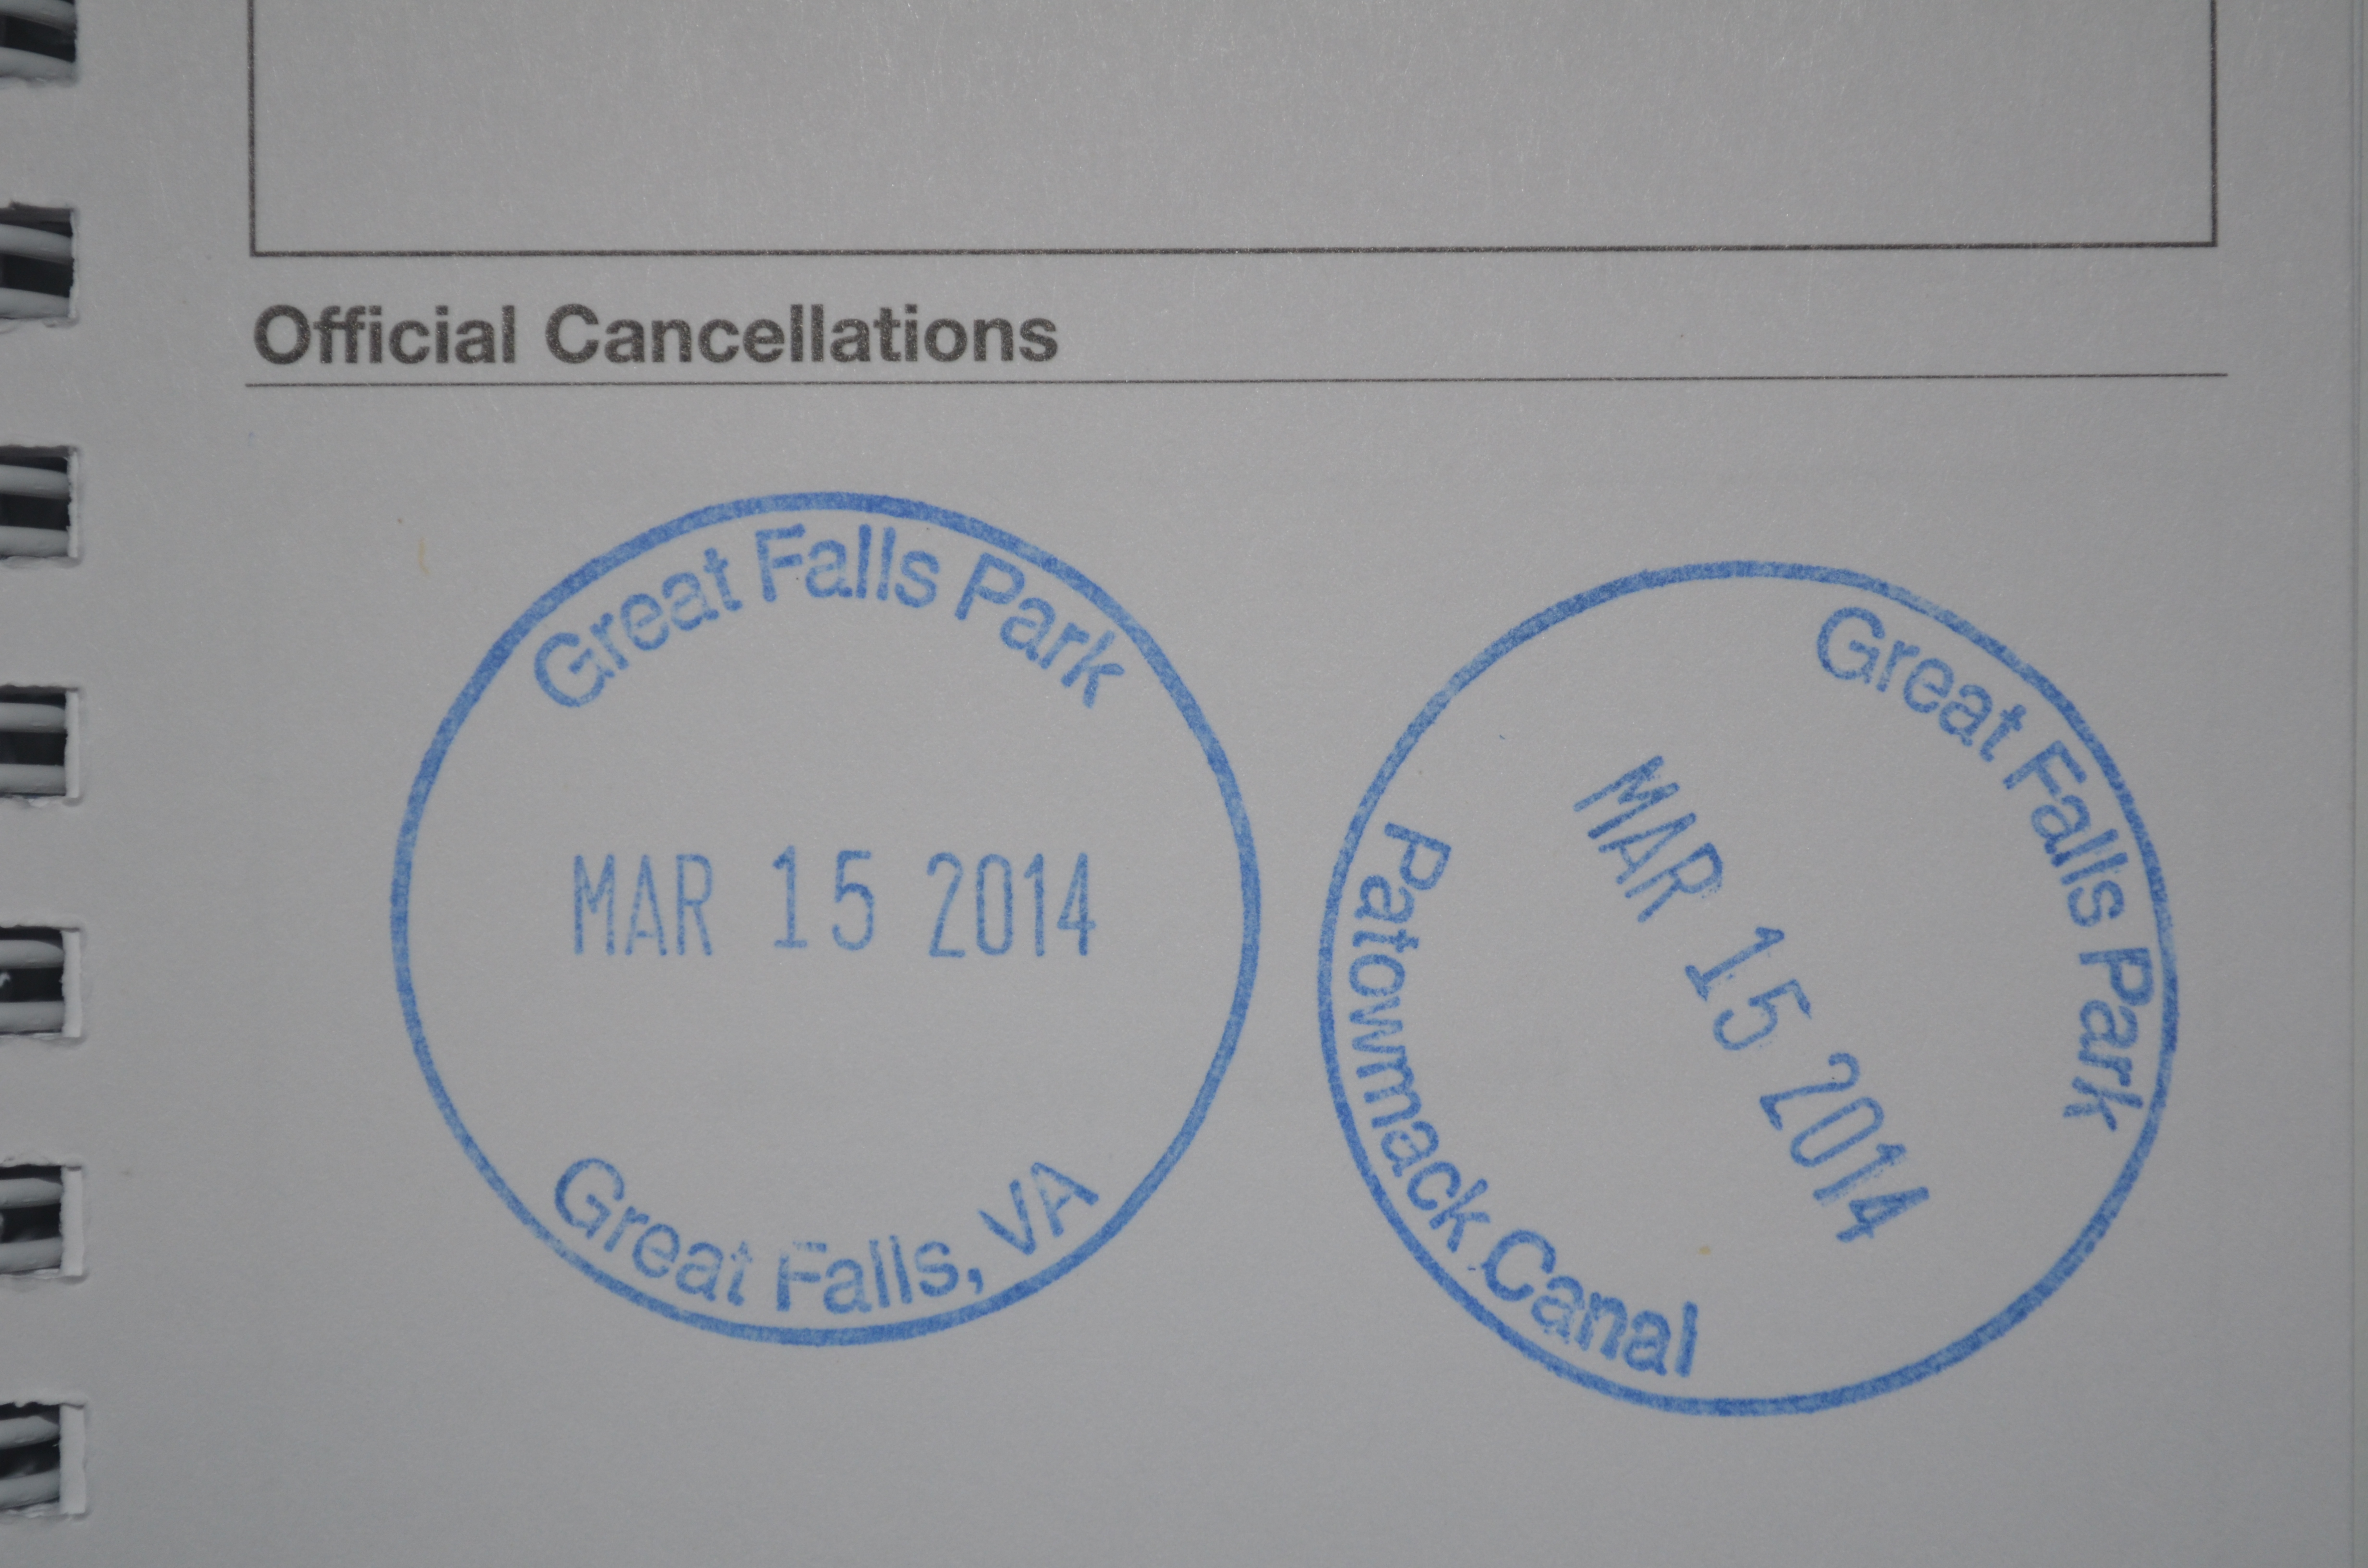 Cancellation stamps from Great Falls National Park